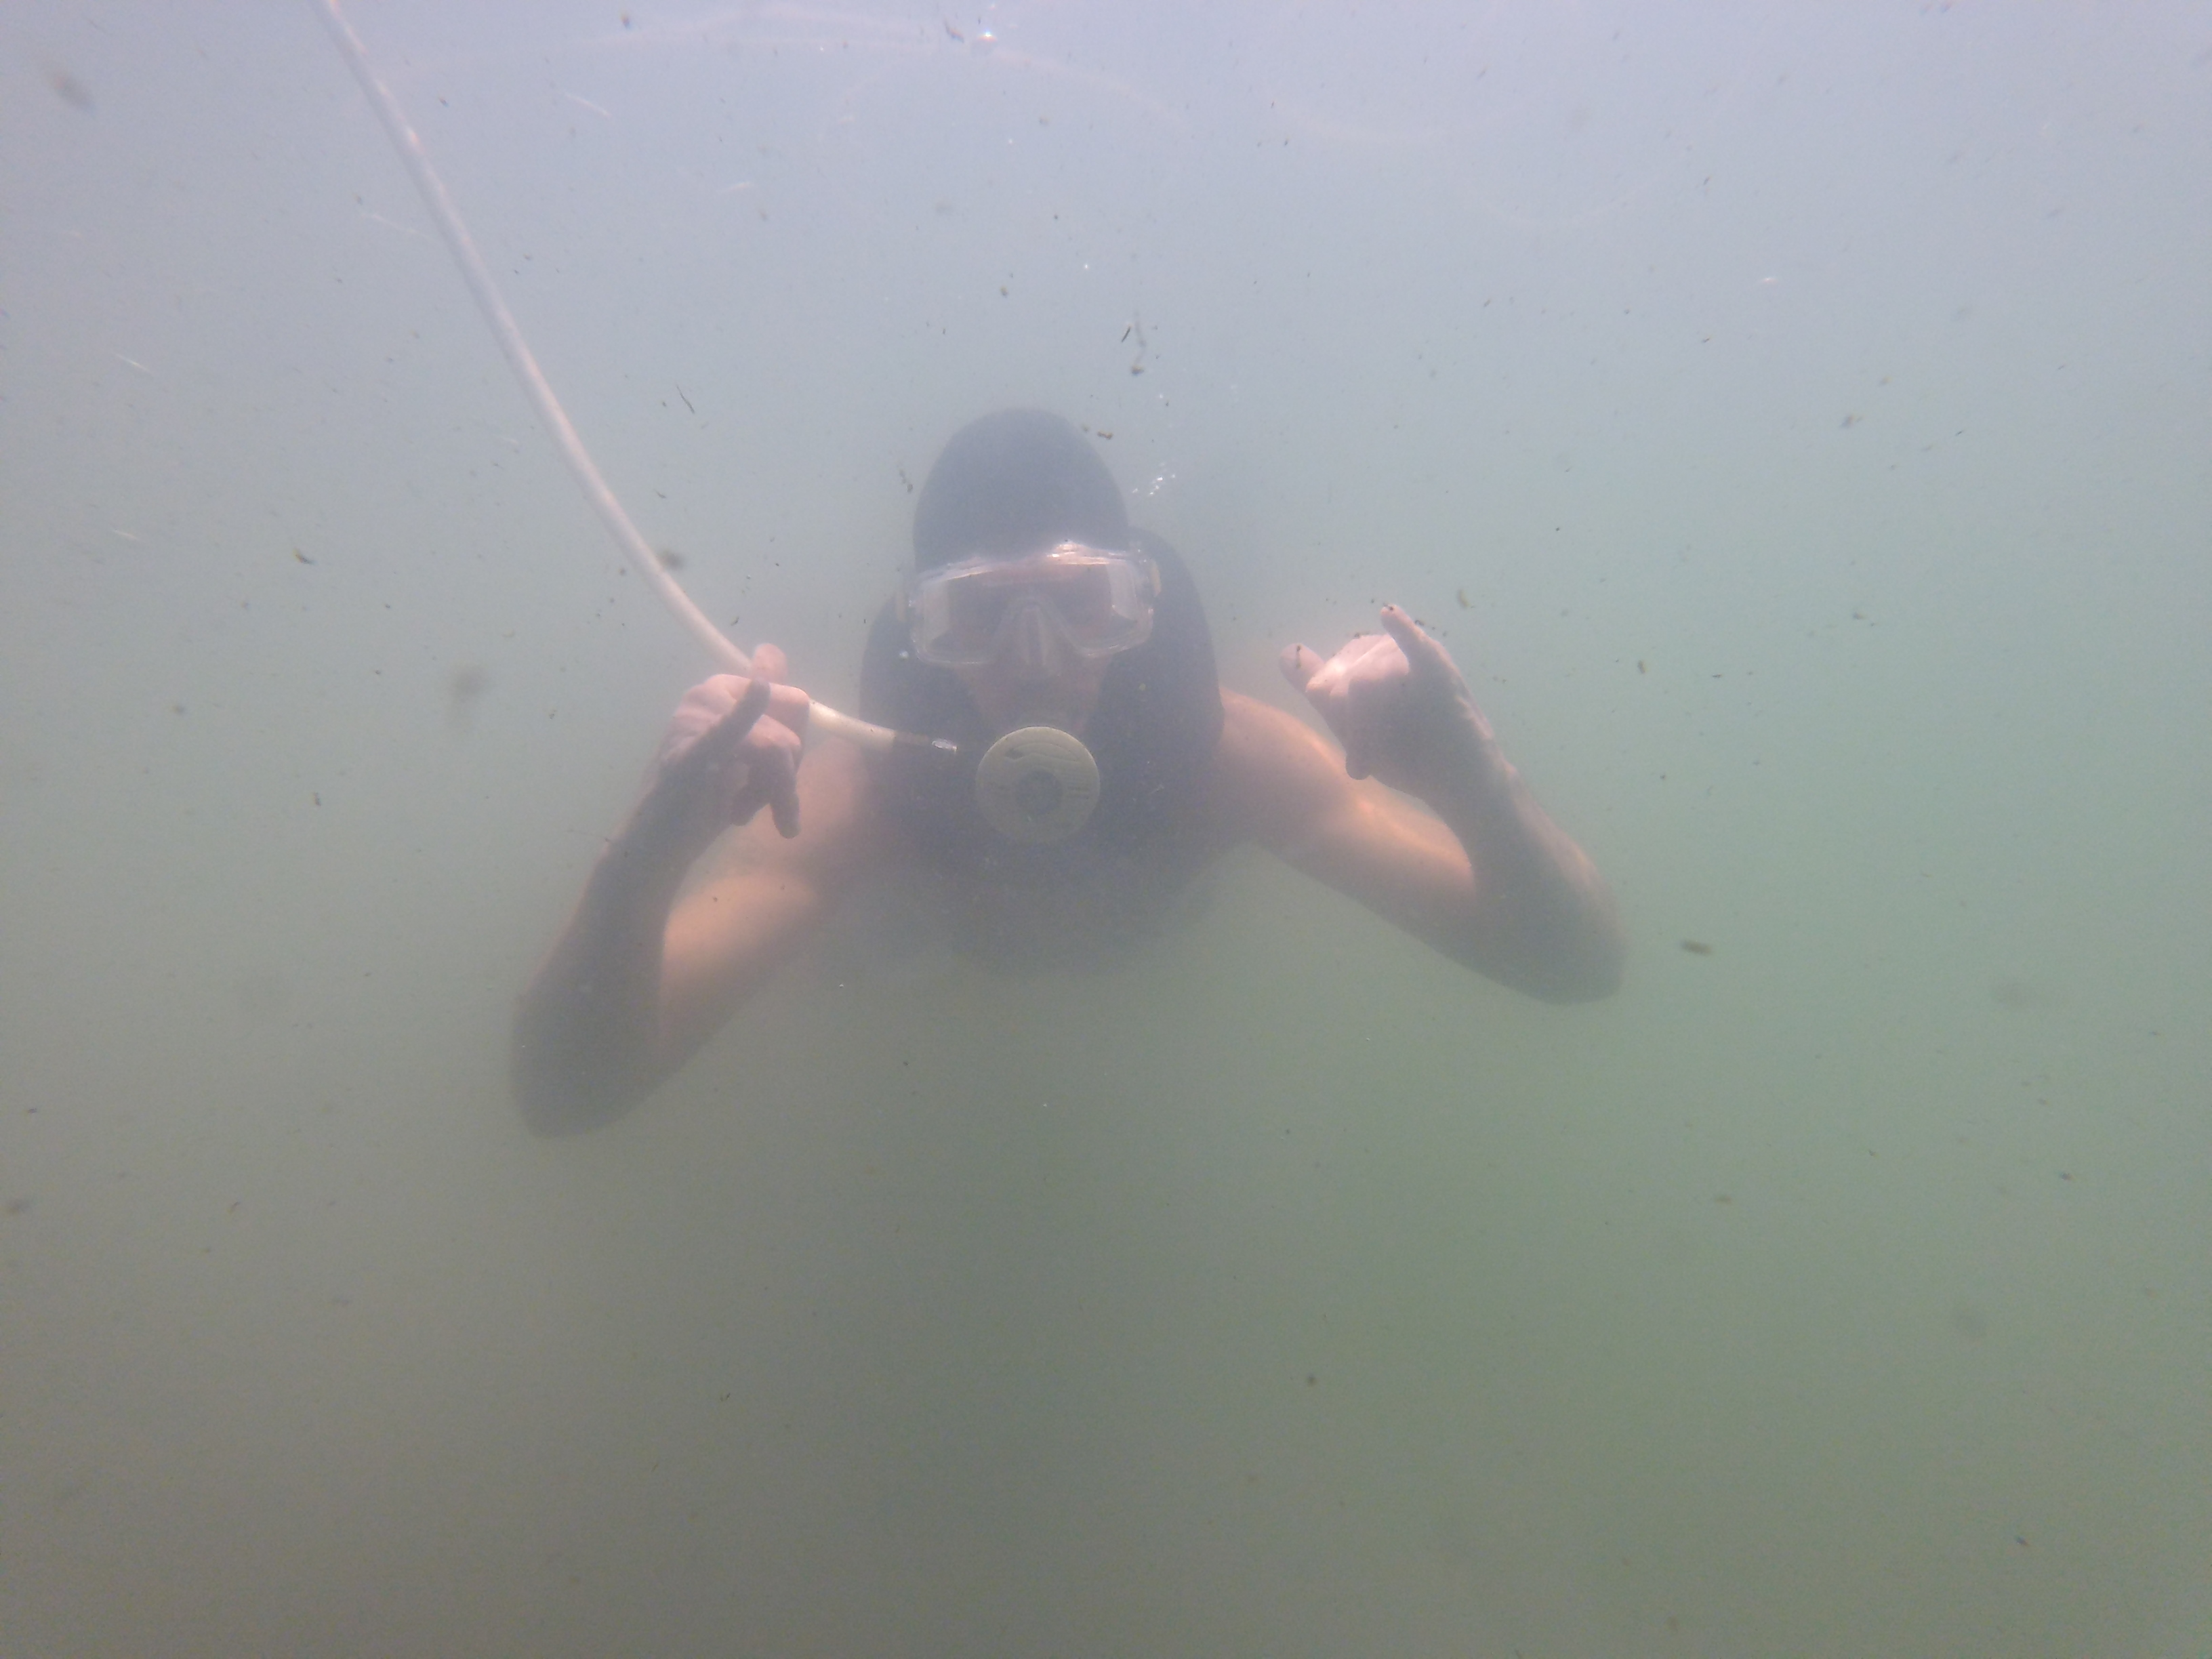 dive services in pinellas county florida